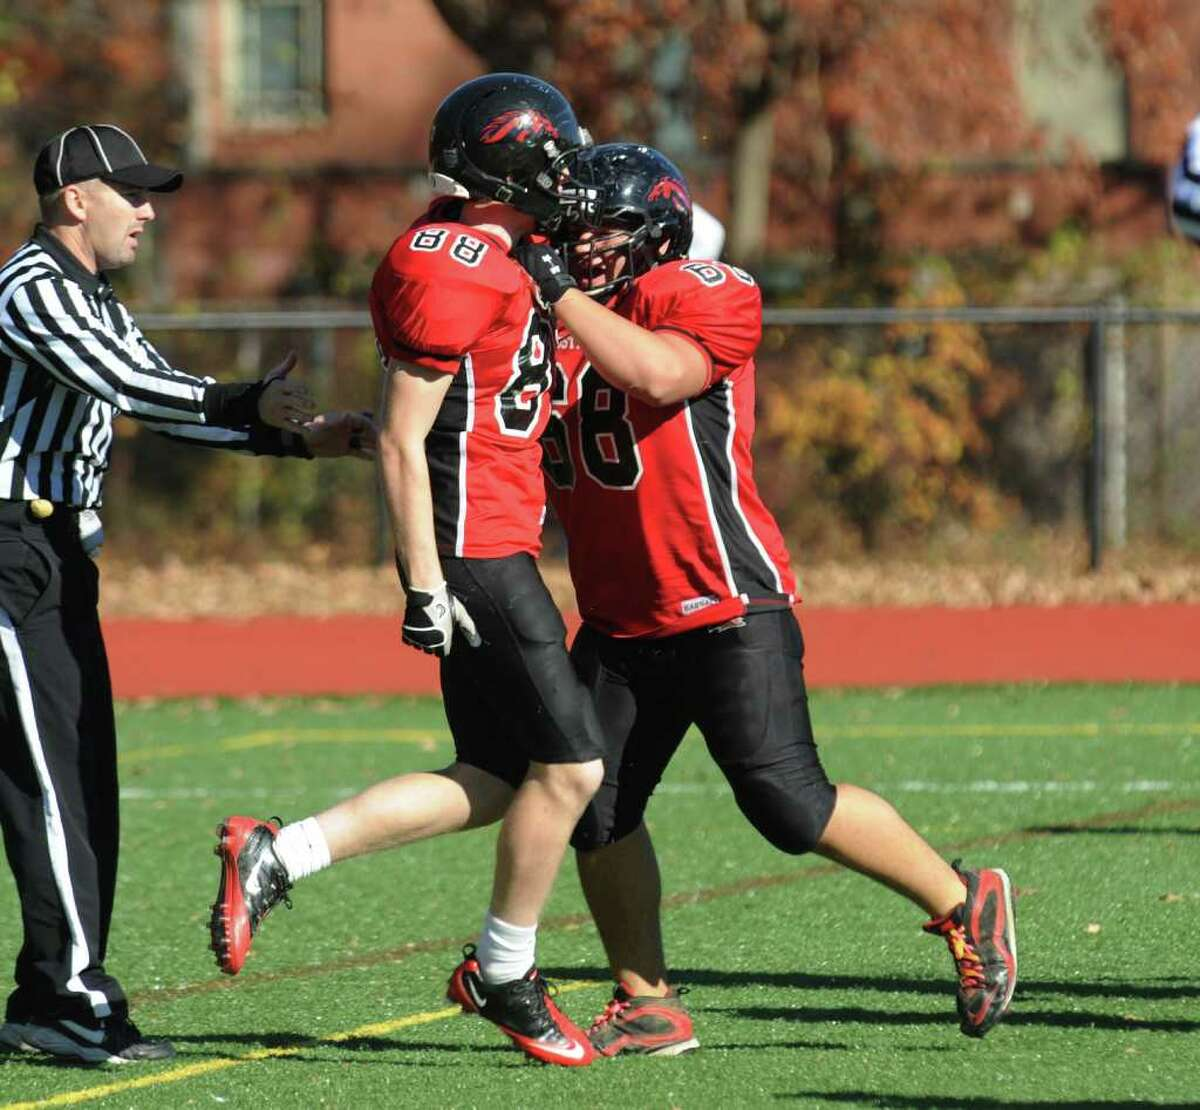 Fairfield Warde's #88 Kevin Sullivan, left, celebrates with a teammate after scoring a touchdown, during football action against Danbury in Fairfield, Conn. on Saturday November 13, 2010.